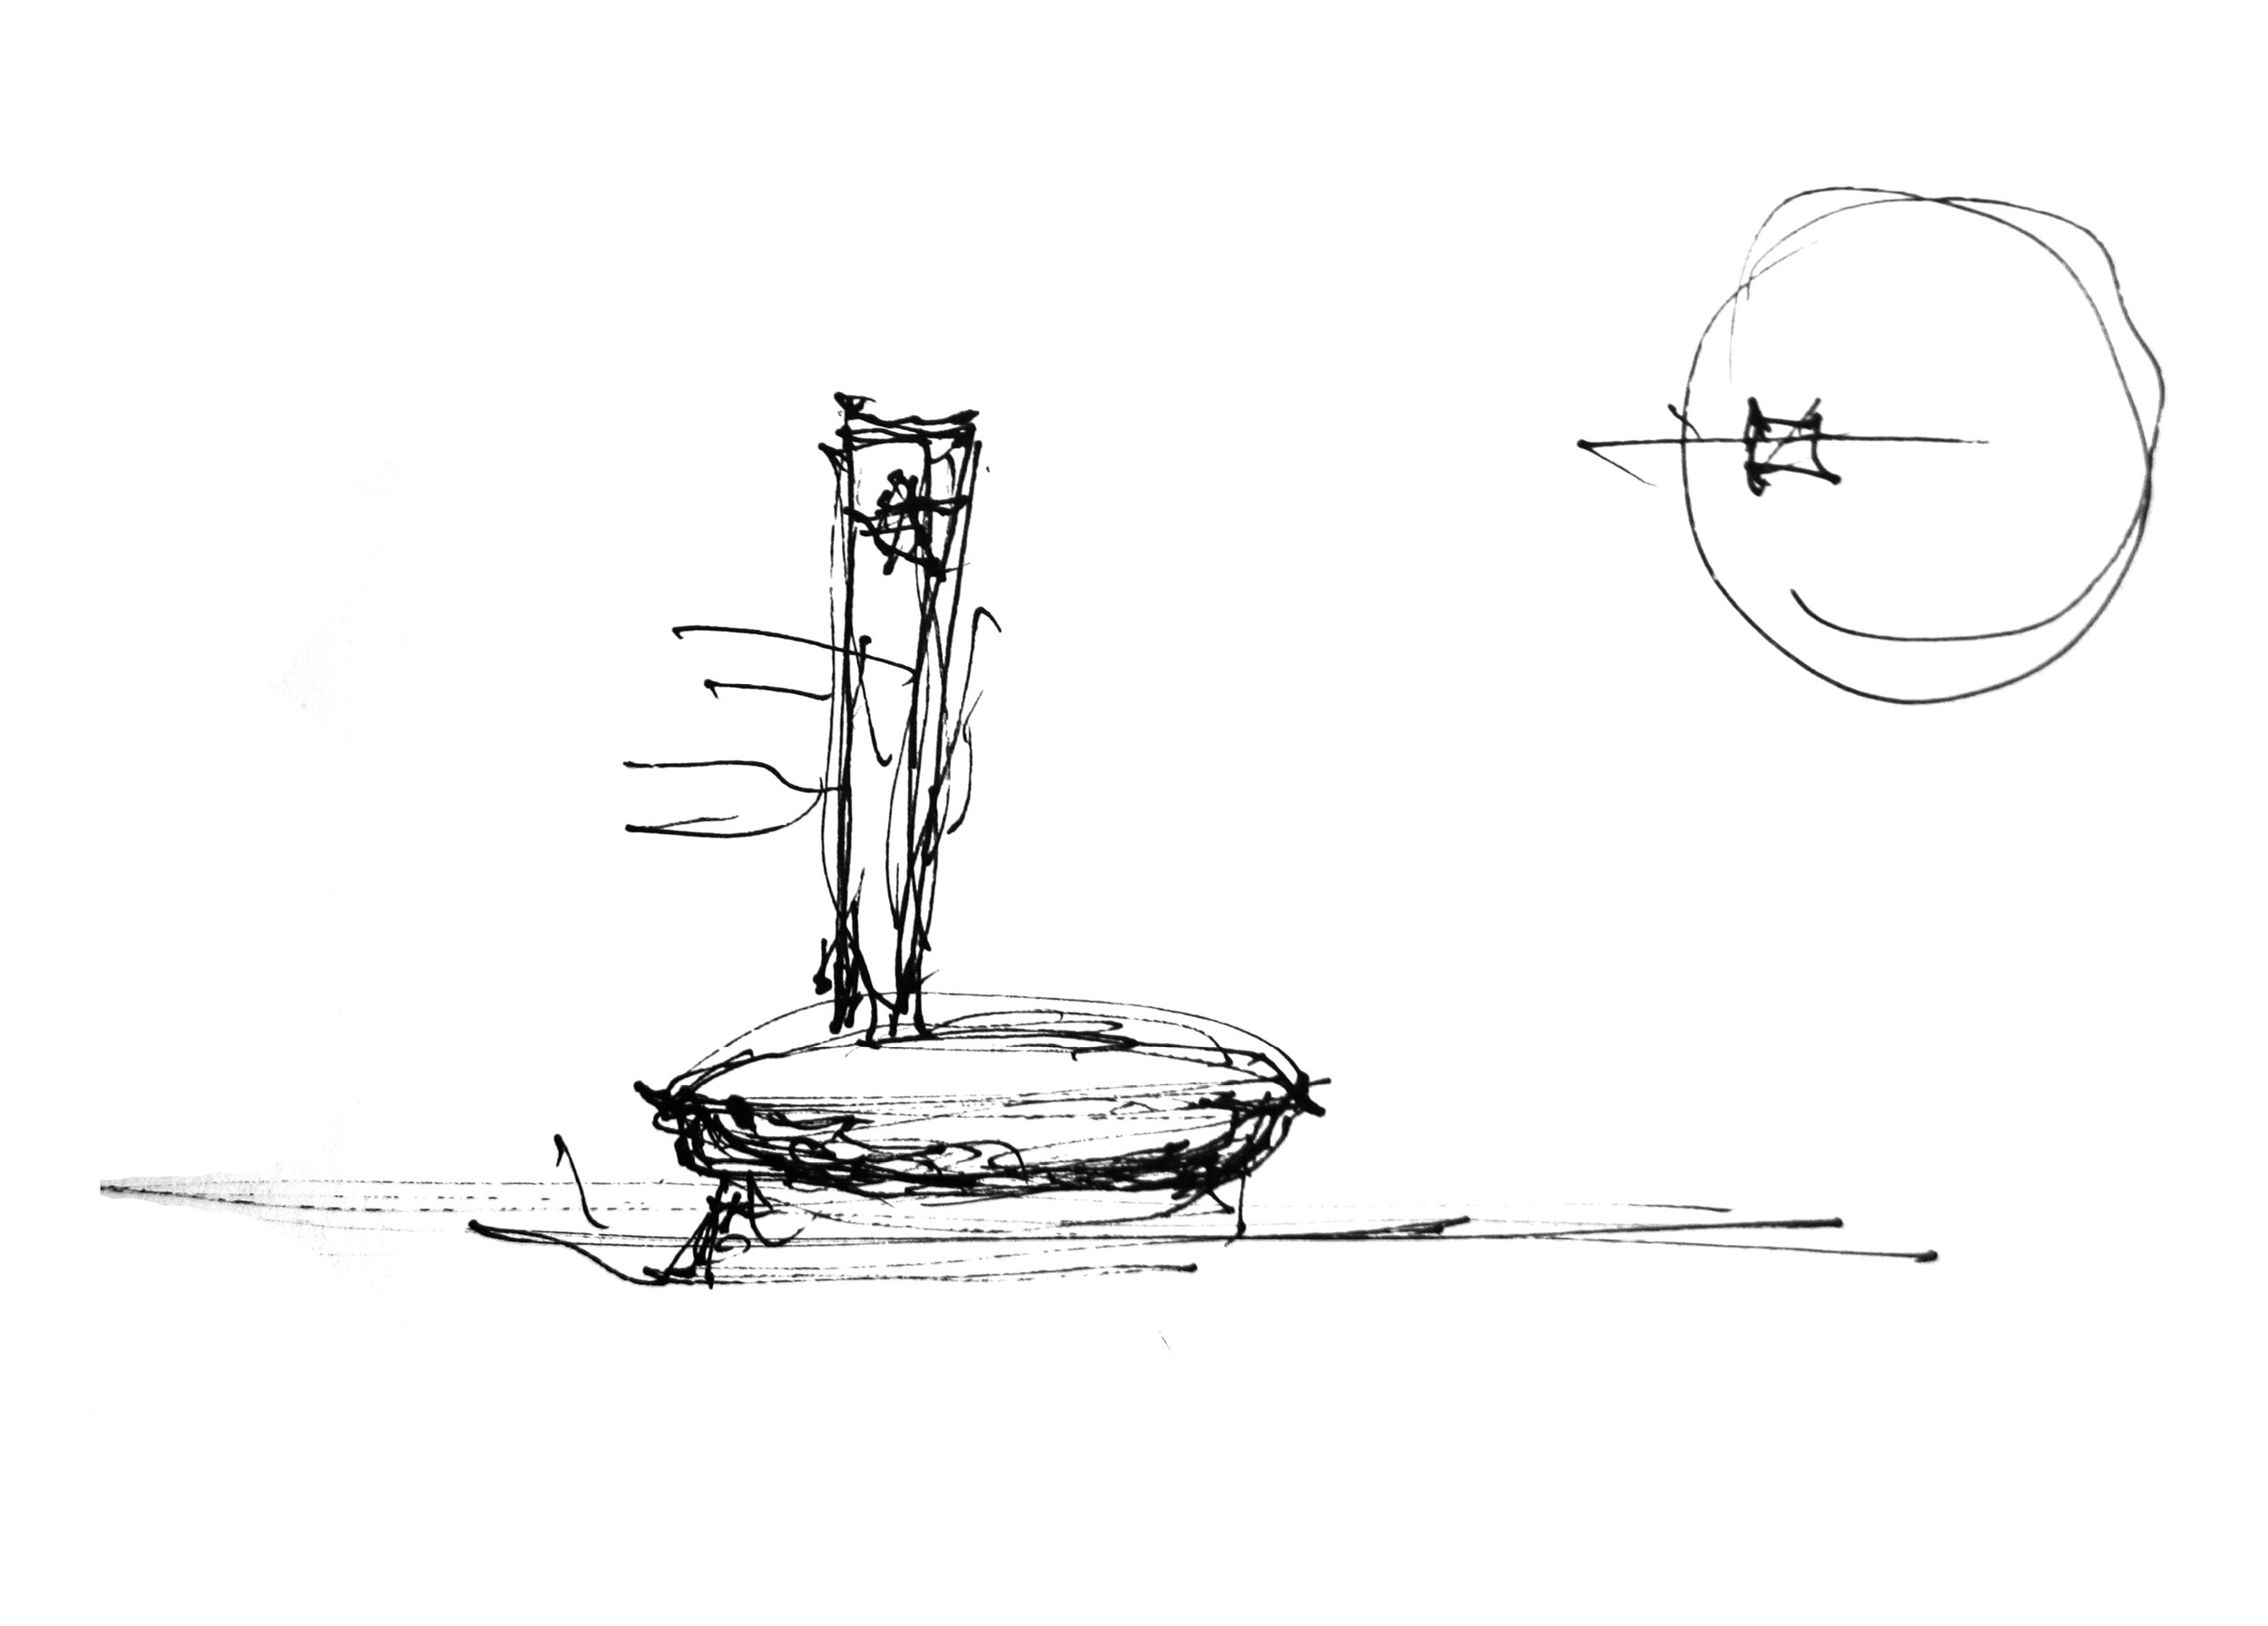 3. Answering the need for an interior visitor space,Stoilov designs a spherical body in place of the ring. (Sketch by architect Georgi Stoilov, 26th June 2014)